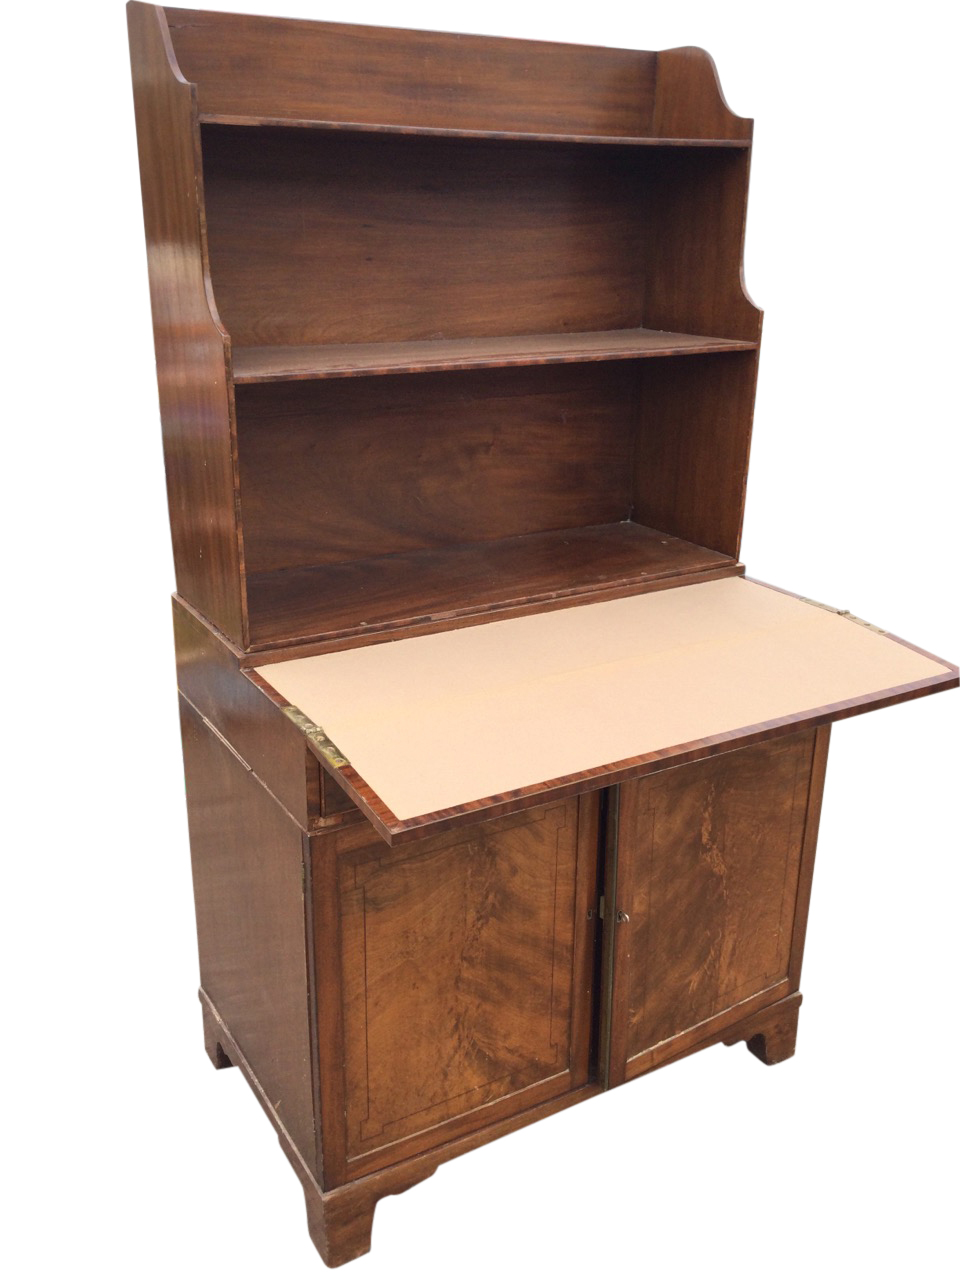 A mahogany secretaire bookcase with open shelves above a turn-over crossbanded desk with baize - Image 2 of 3